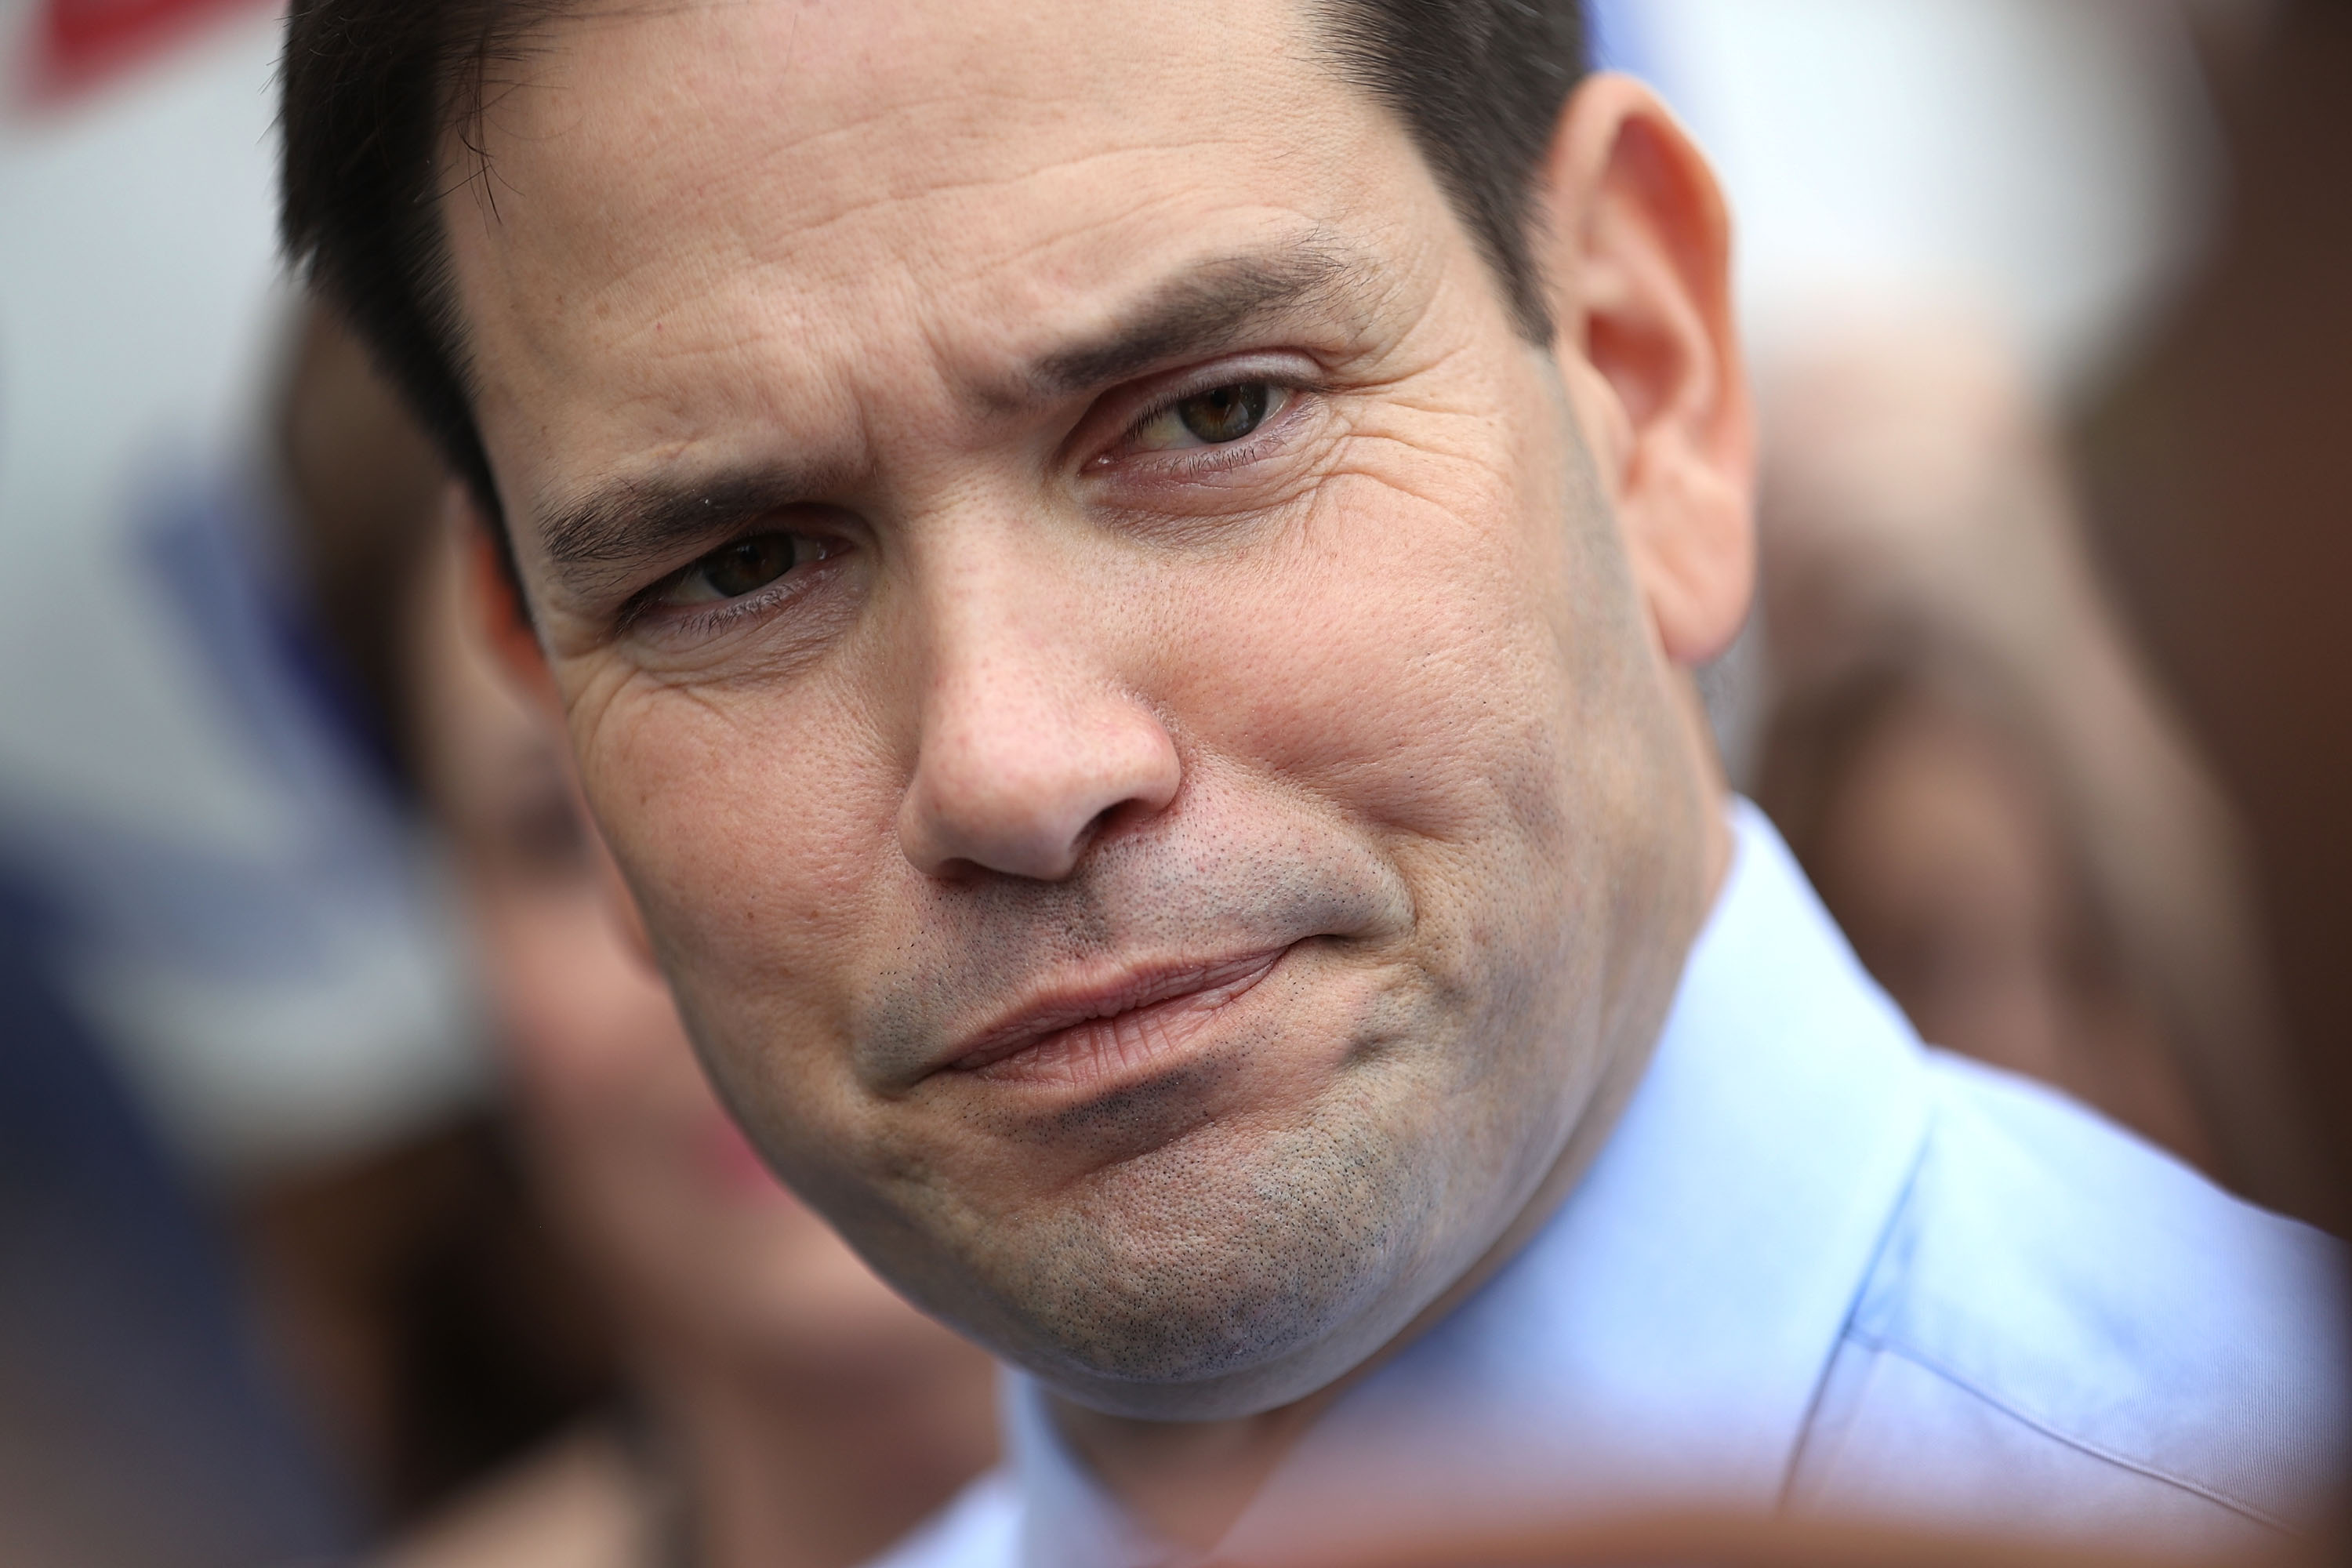 Sen. Marco Rubio (R-FL) speaks to the media after   casting his general election ballot during early voting in Miami, Florida on Oct. 31, 2016. Rubio slammed President Barack Obama on Nov. 26 for his 'pathetic' statement on the death of Cuban communist dictator Fidel Castro. (Joe Raedle/Getty Images)